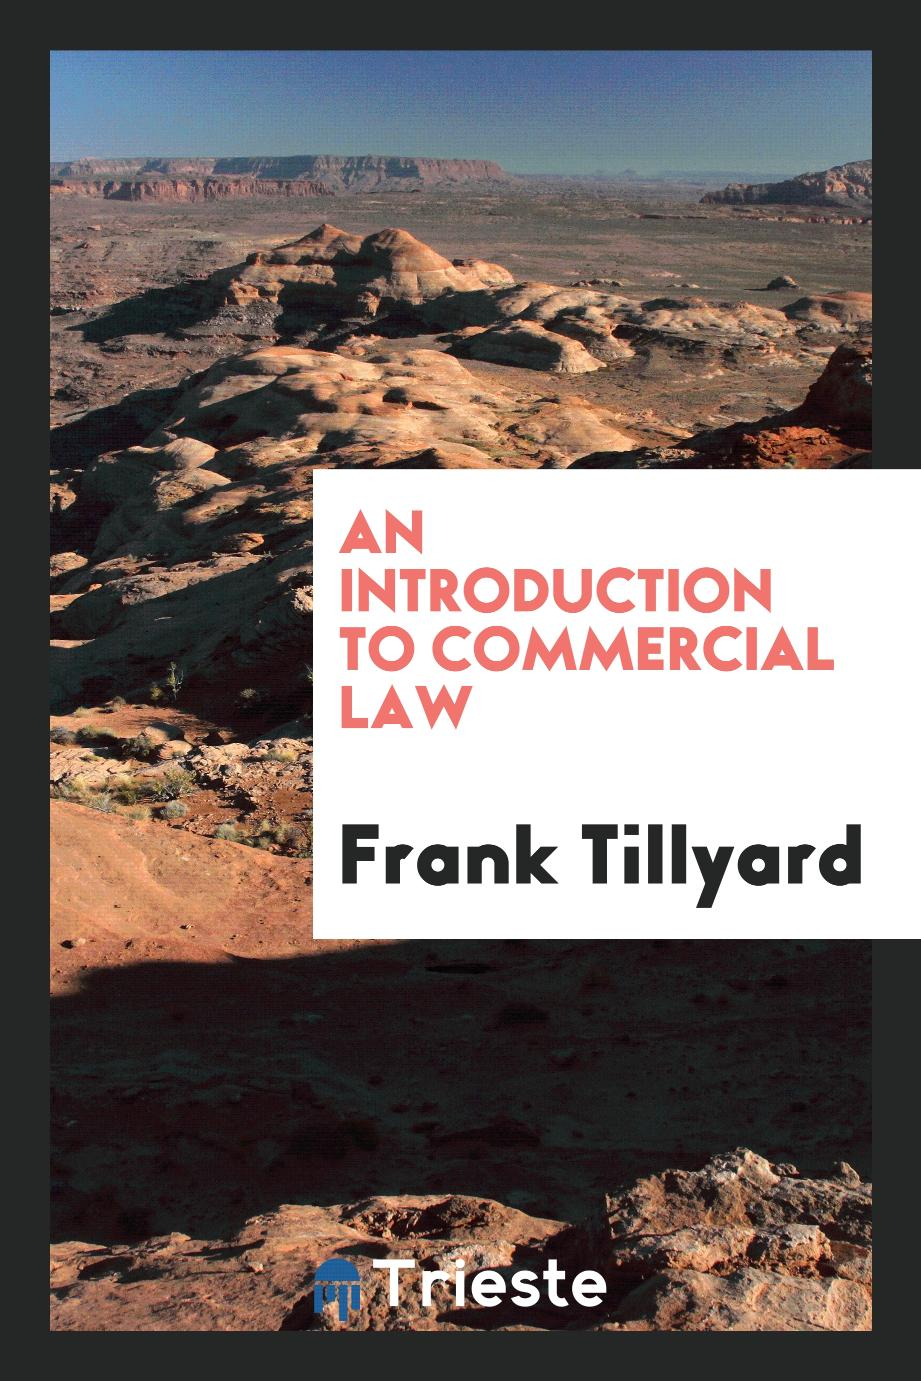 Frank Tillyard - An introduction to commercial law